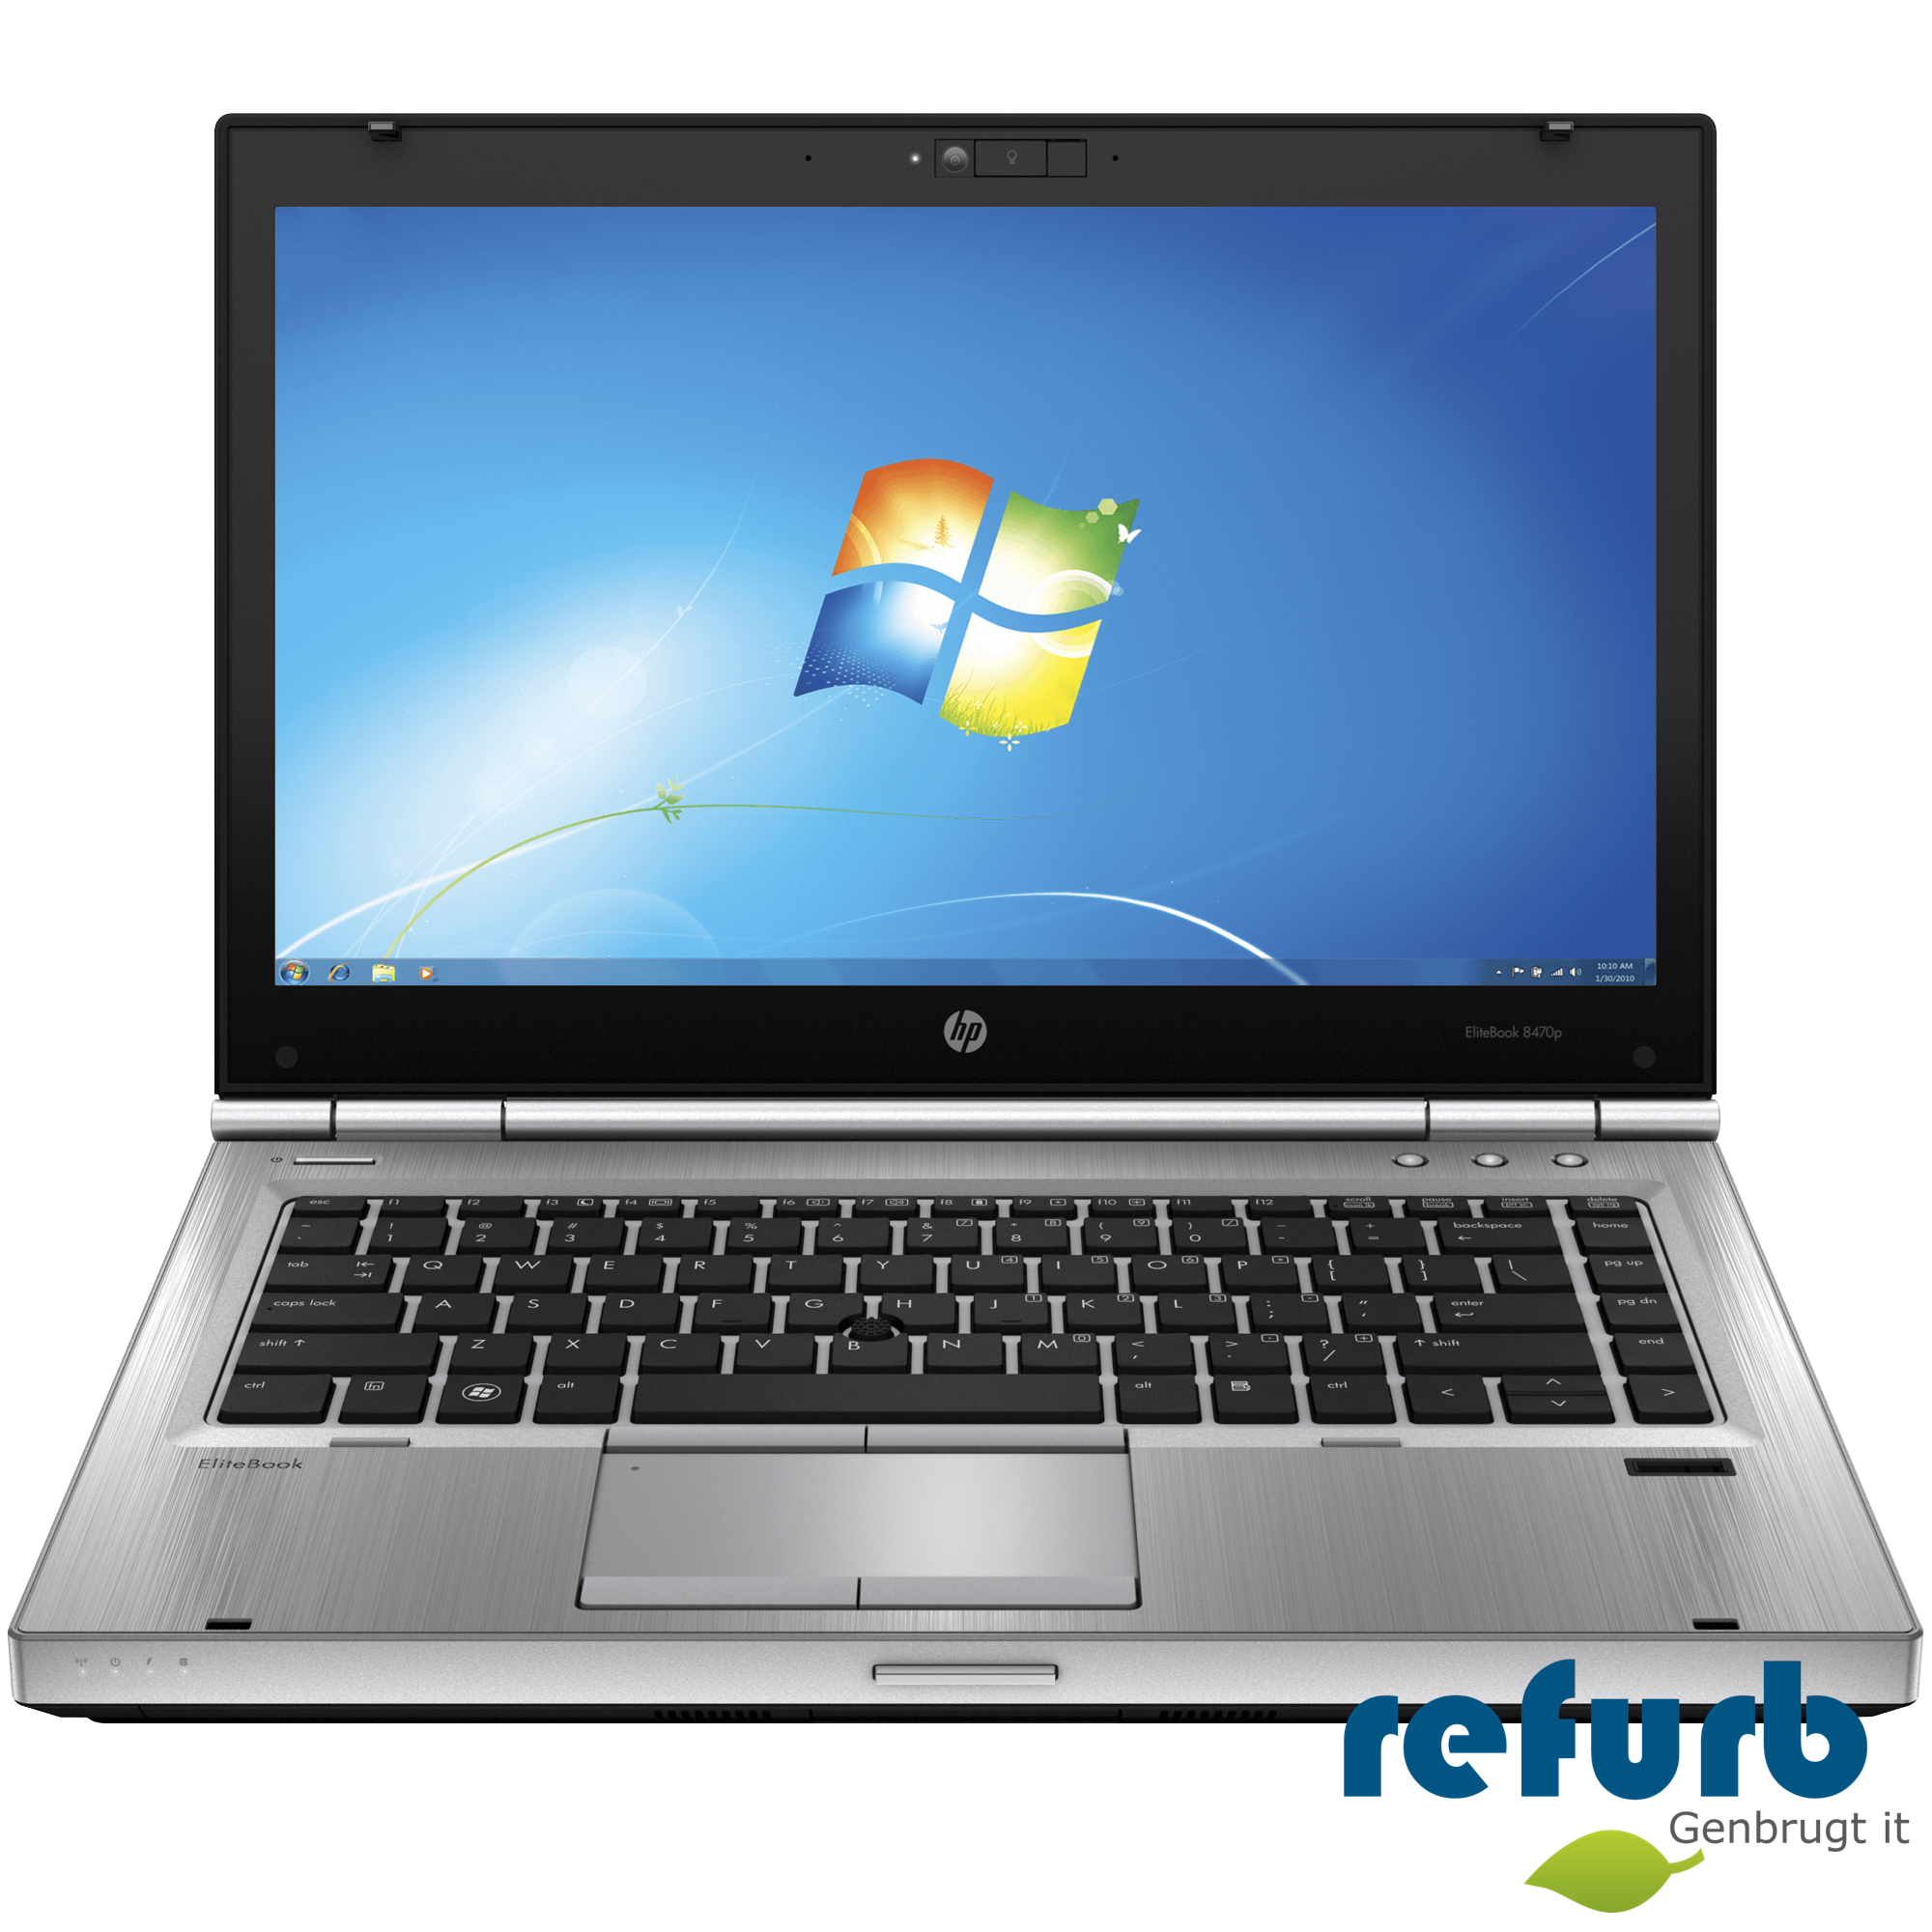 Hp elitebook 8470p fra Hp på refurb